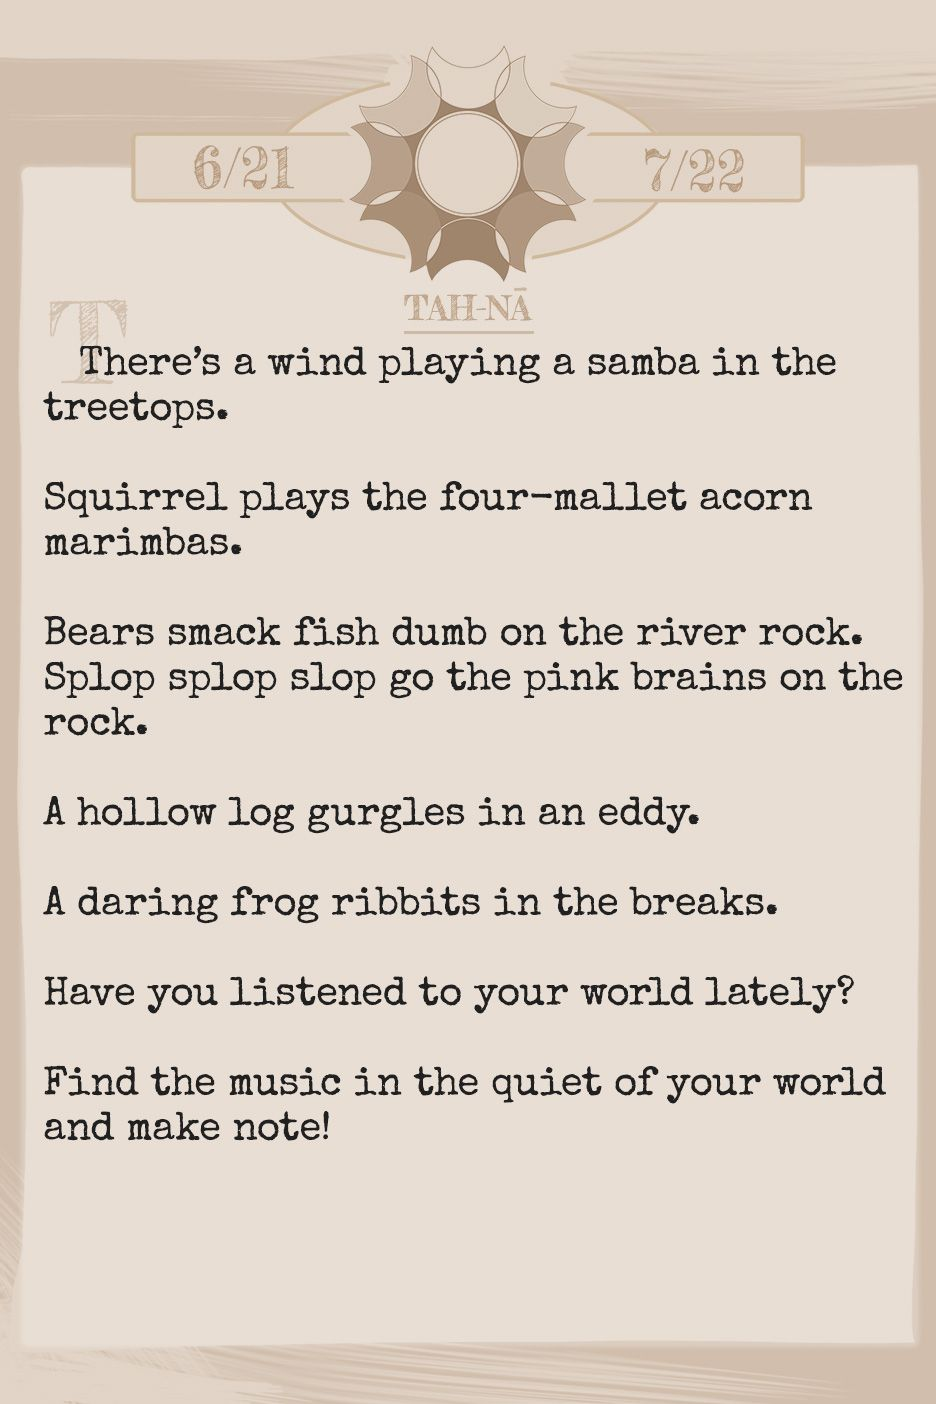 February 2019 Horoscope (Old sign: Cancer) There's a wind playing a samba in the treetops. Squirrel plays the four-mallet acorn marimbas. Bears smack fish dumb on the river rock. Splop splop slop go the pink brains on the rock. A hollow log gurgles in an eddy. A daring frog ribbits in the breaks. Have you listened to your world lately? Find the music in the quiet of your world and make note!